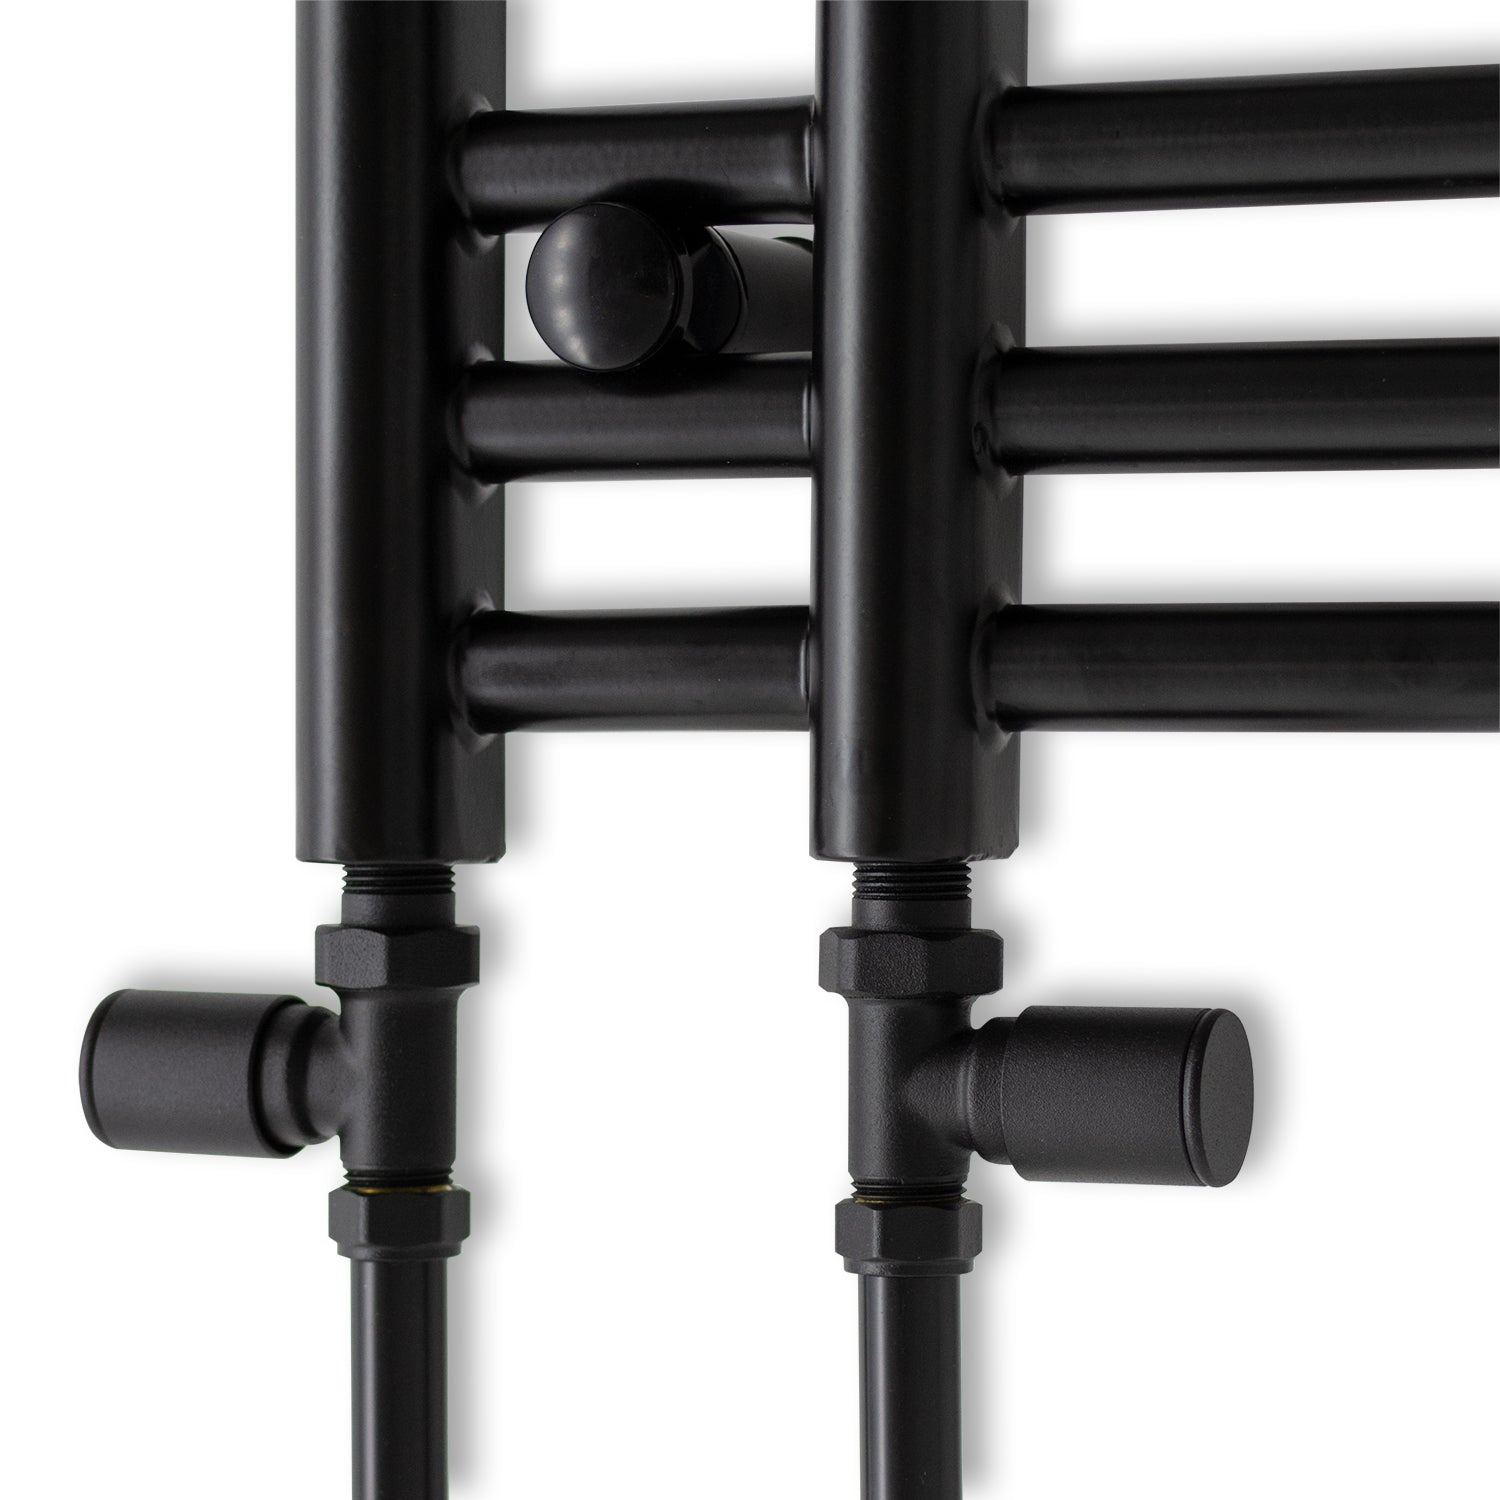 500mm Wide 900mm High Black Towel Rail Radiator With Angled Valve